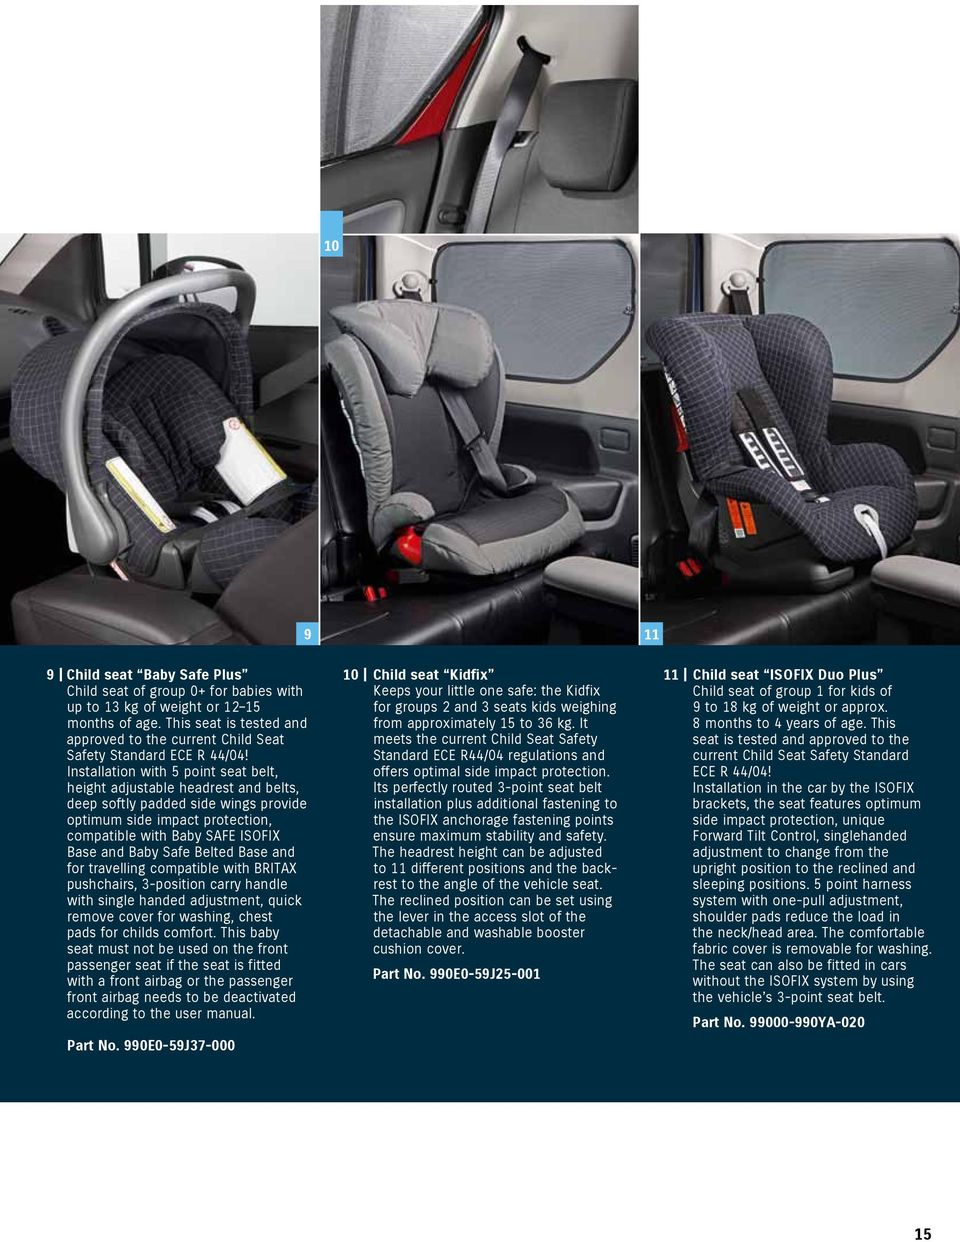 Accessories Catalogue Pdf 2000 Excursion 4x4 68l Engignition Switchwiring Harnesstrans Installation With 5 Point Seat Belt Height Adjustable Headrest And Belts Deep Softly Padded